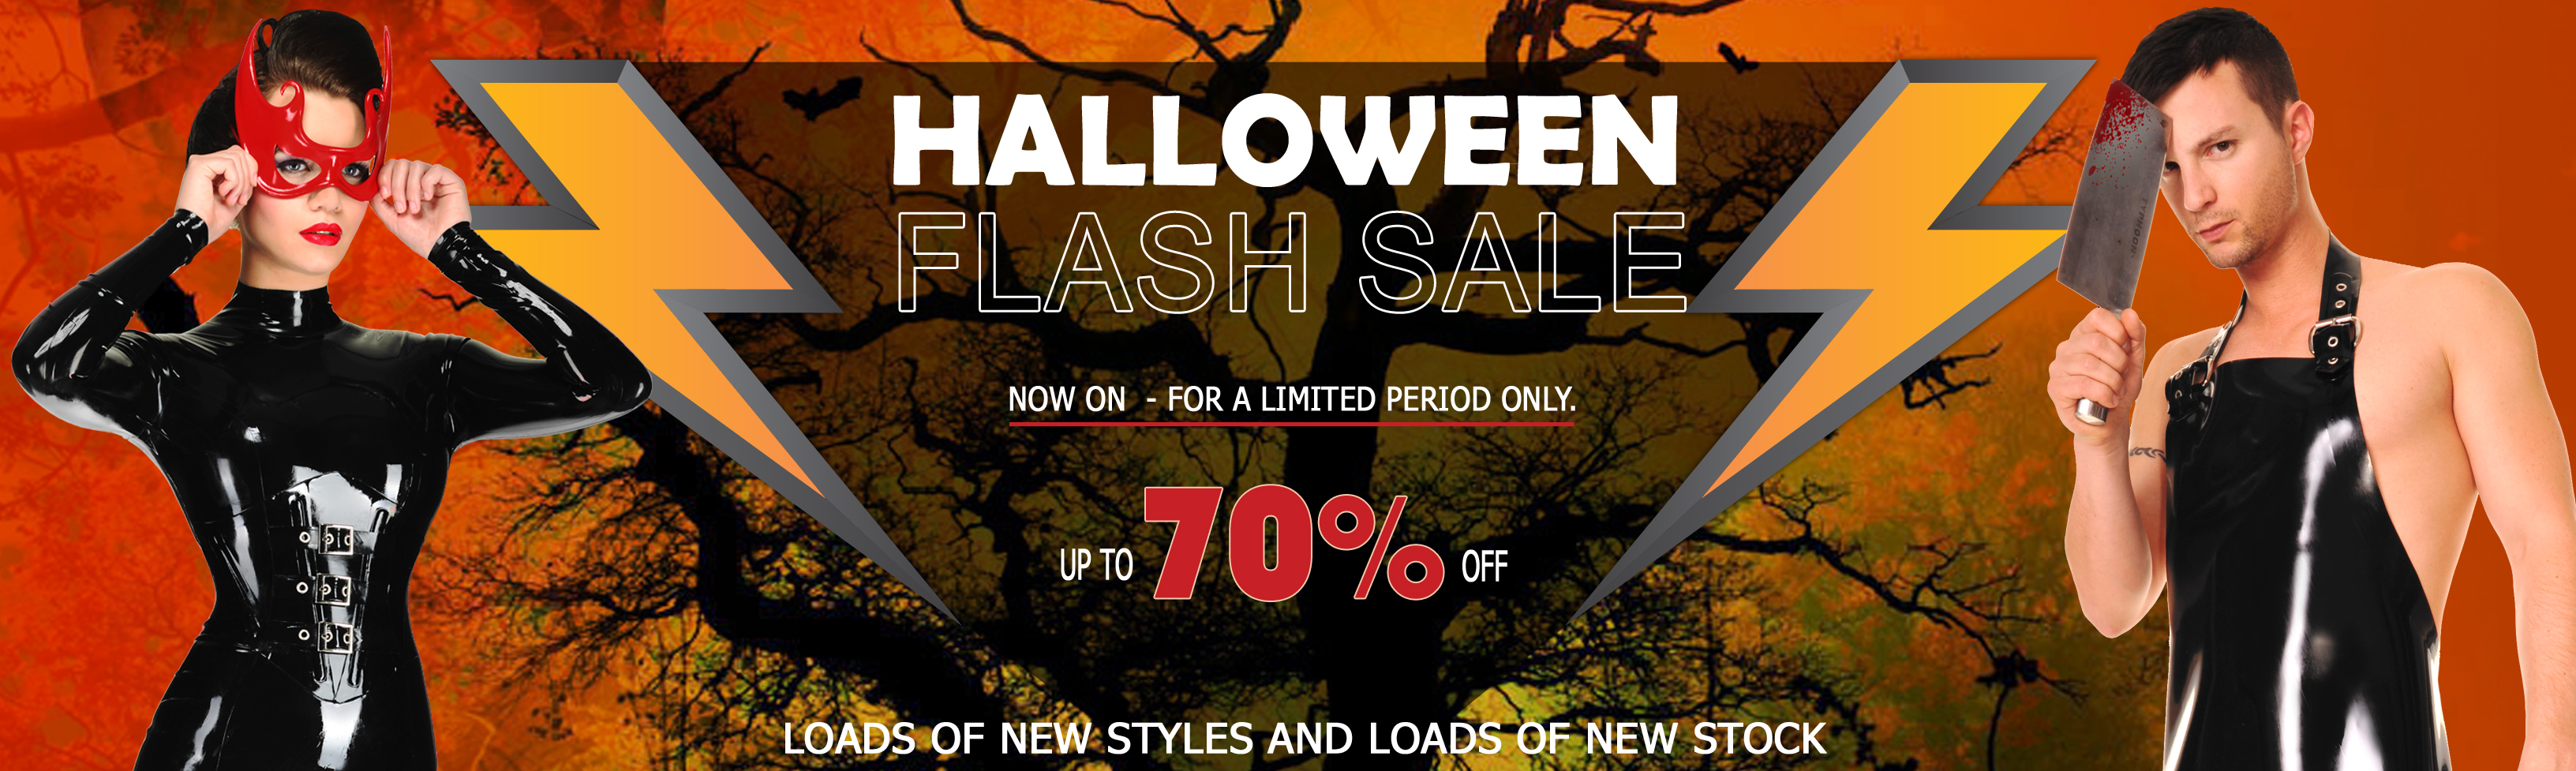 Libidex HALLOWEEN Flash Sale